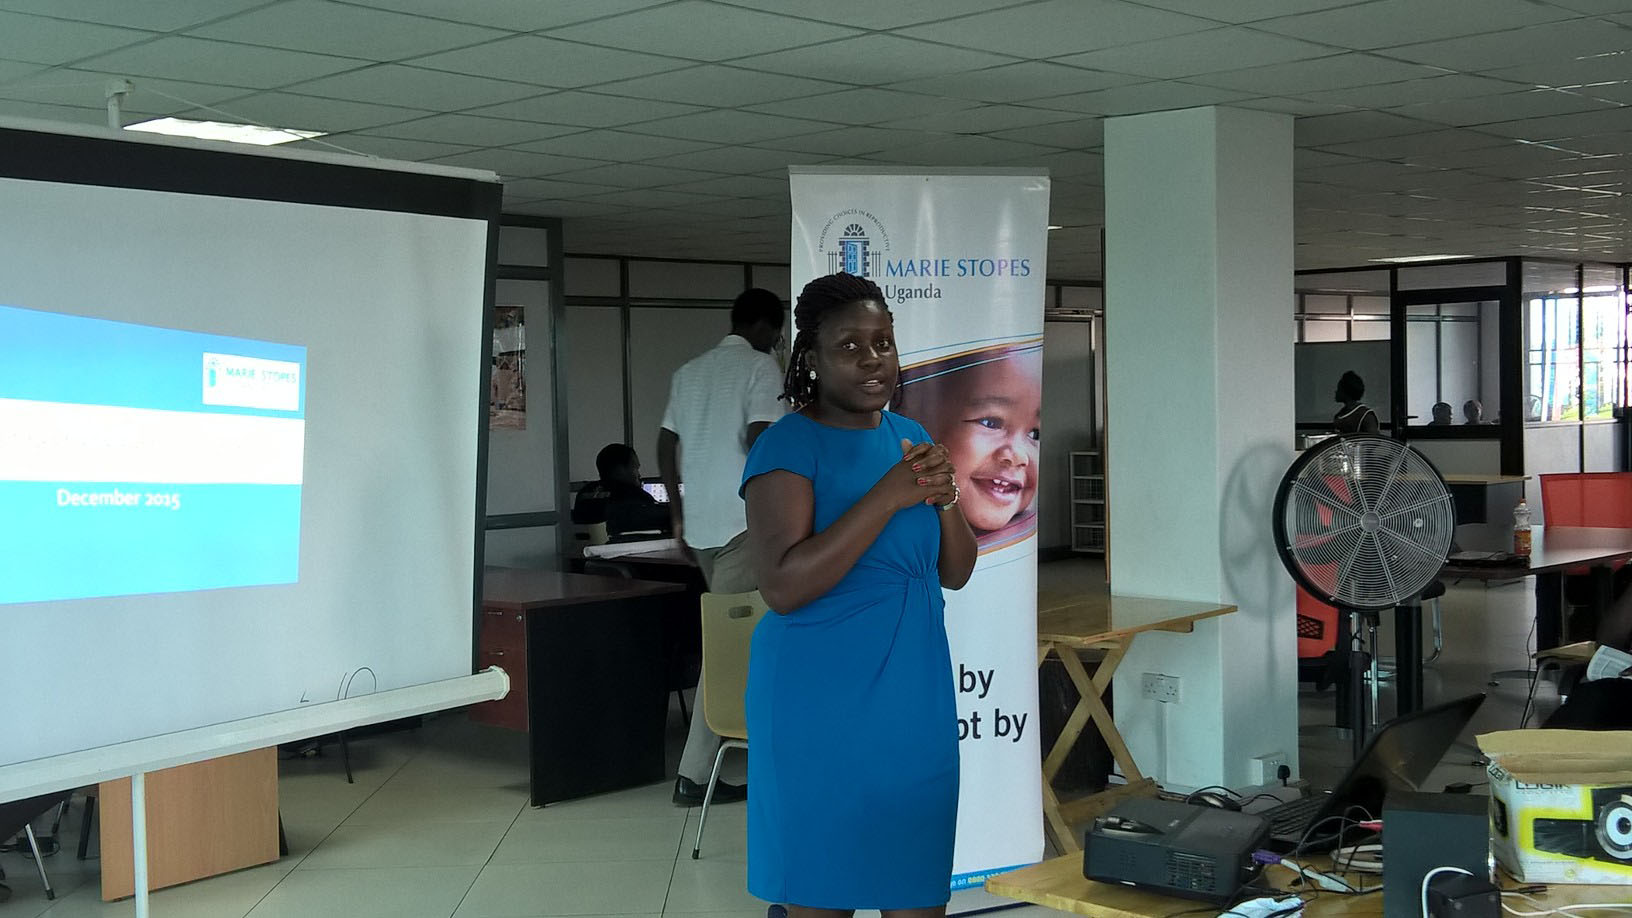 Hive Colab Director, Barbra Birungi welcoming guests at the launch of the Challenge.